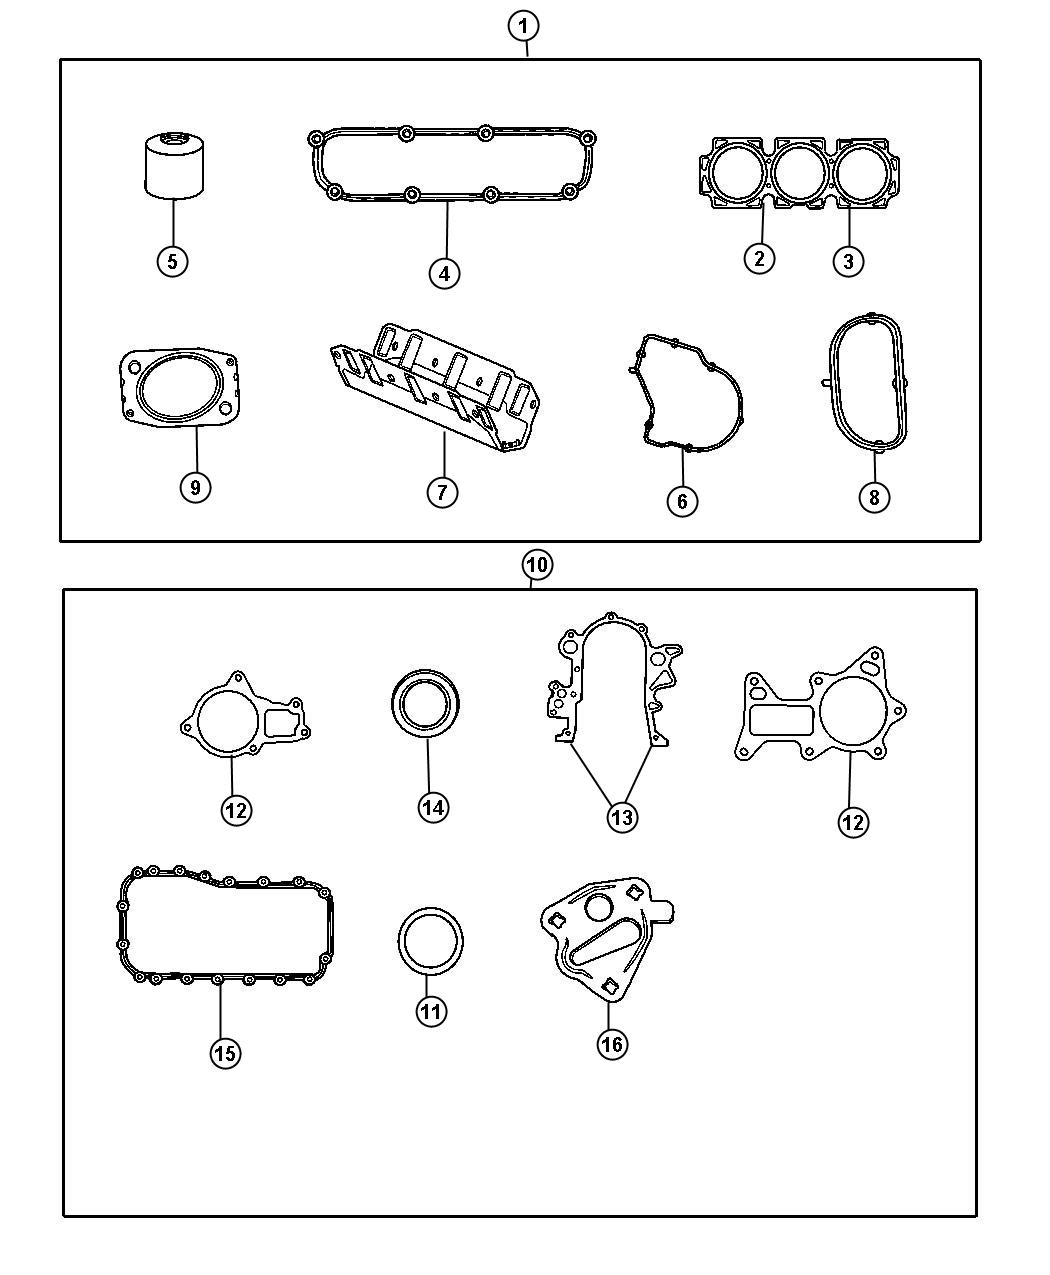 Diagram Engine Gasket Kits 3.8L [3.8L V6 OHV Engine]. for your 2010 Chrysler